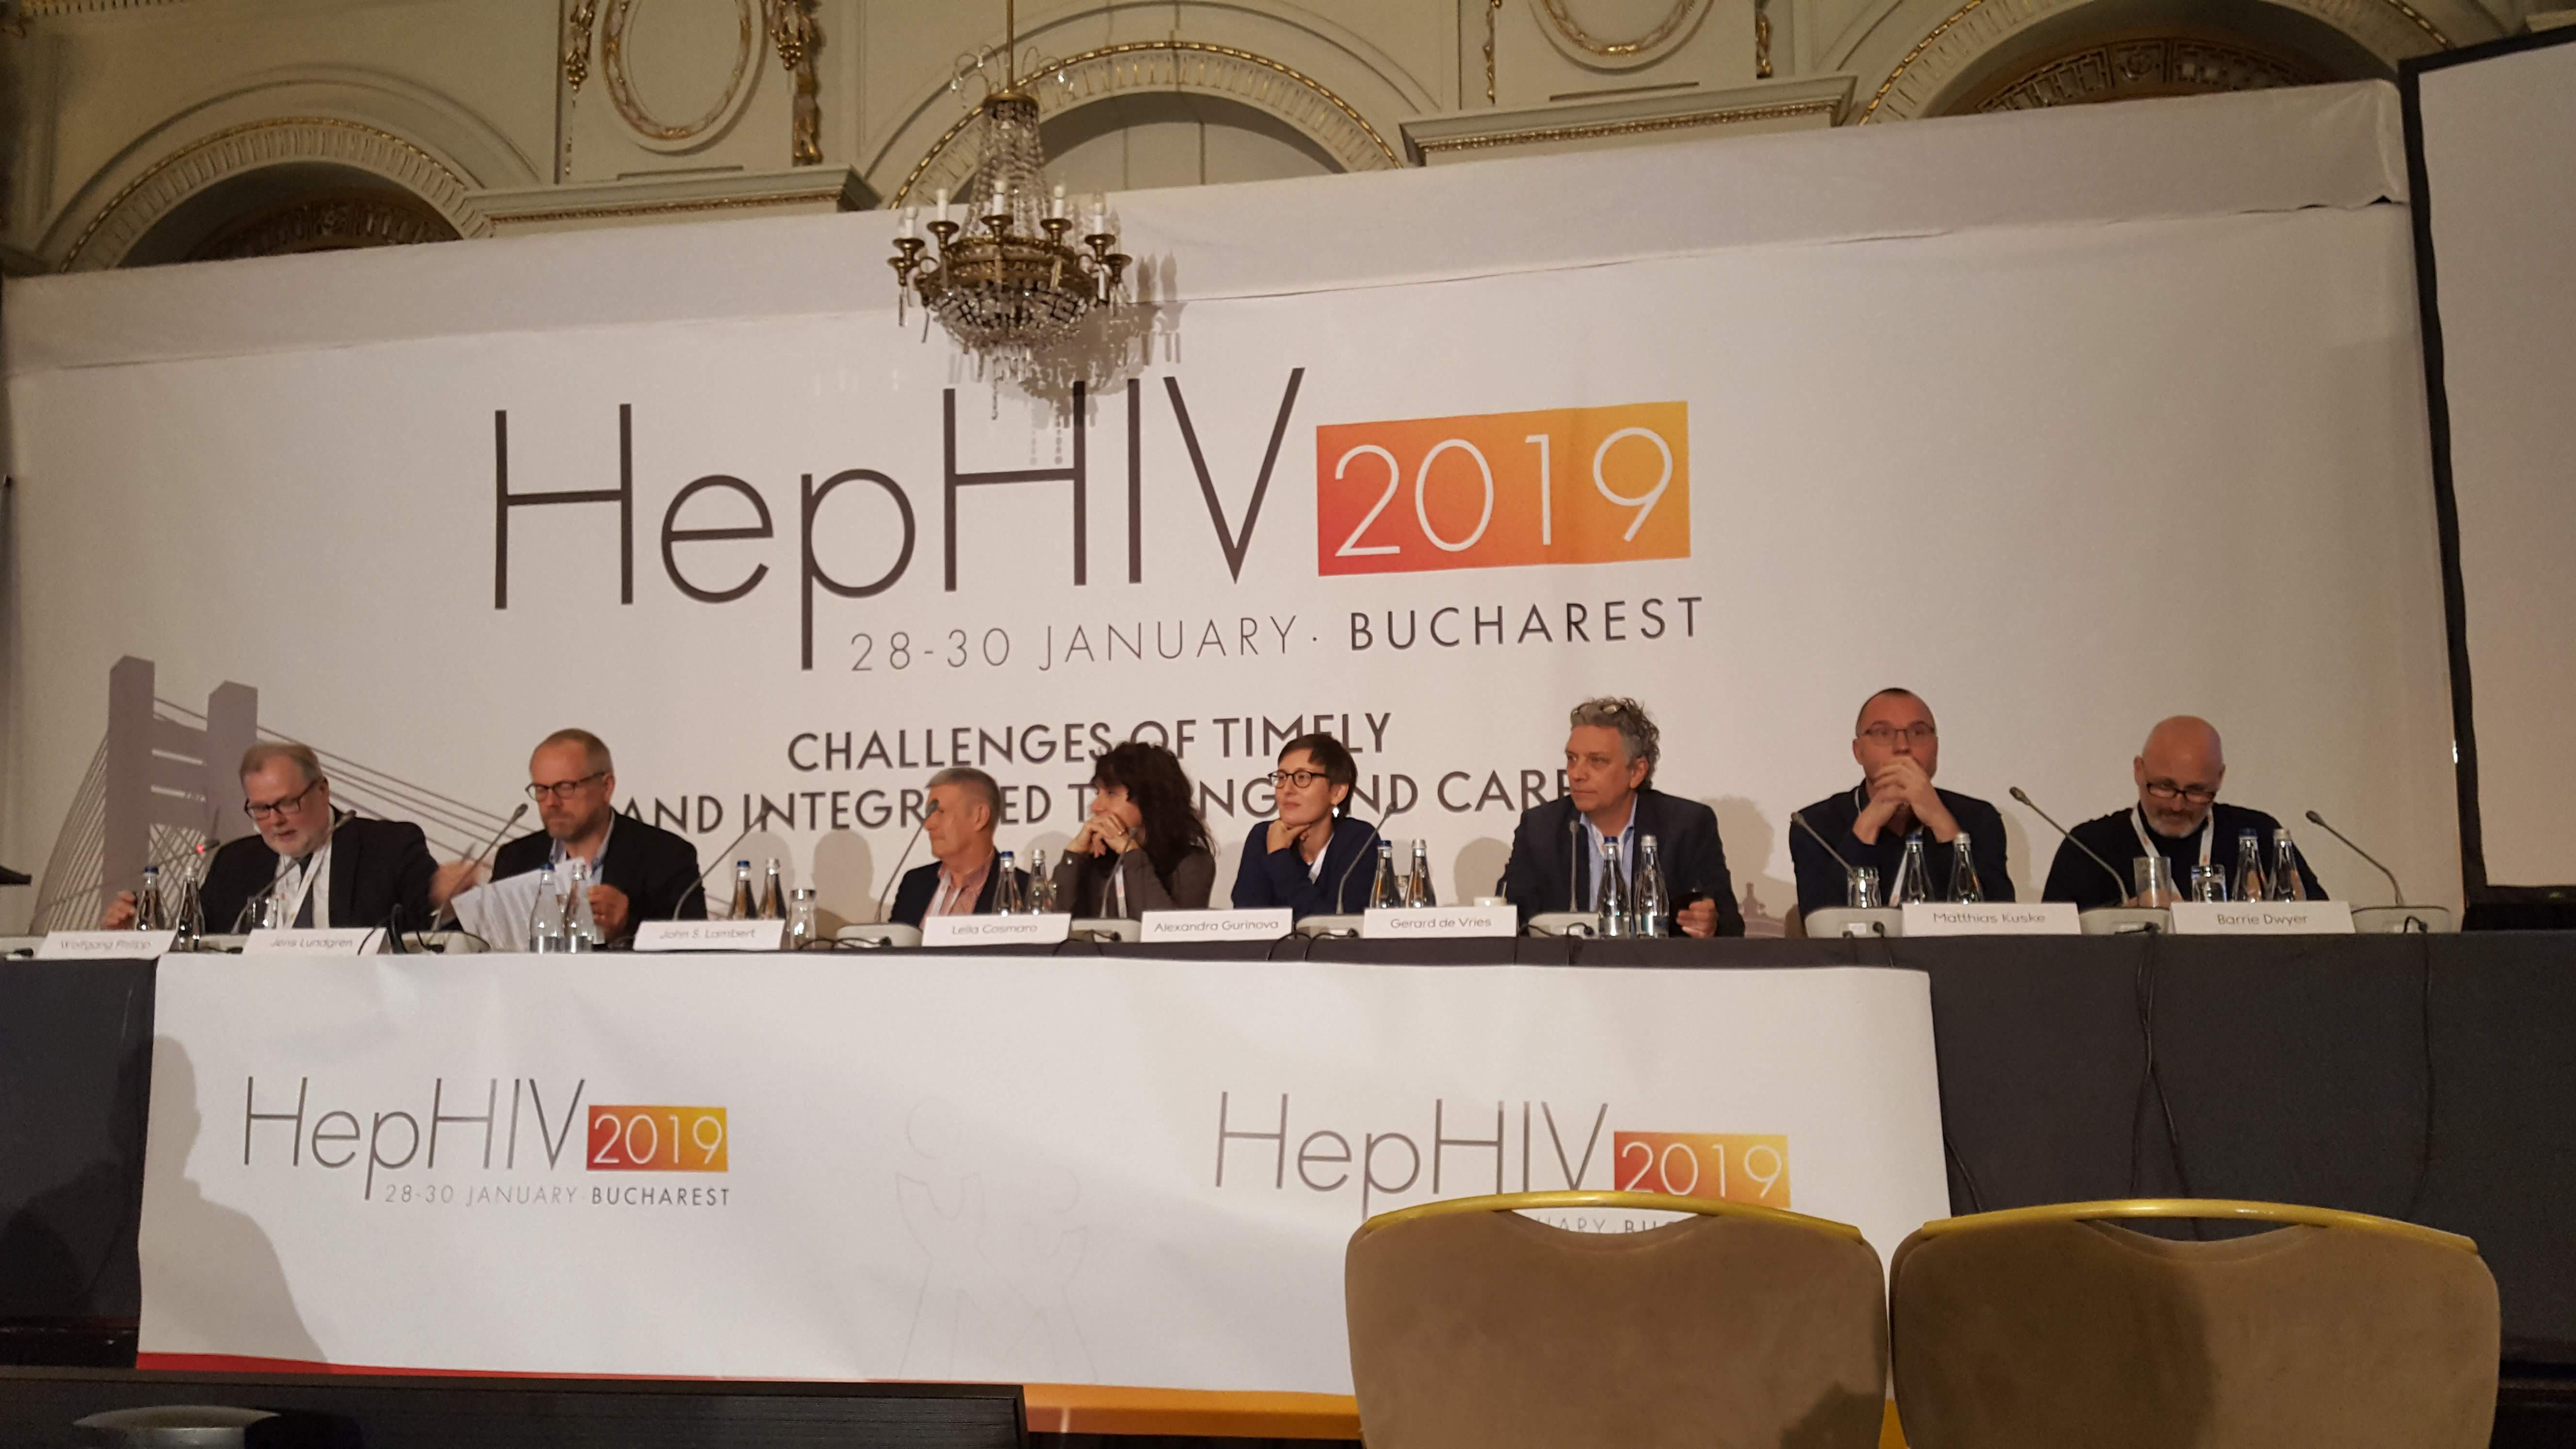 HA-REACT at HepHIV 2019